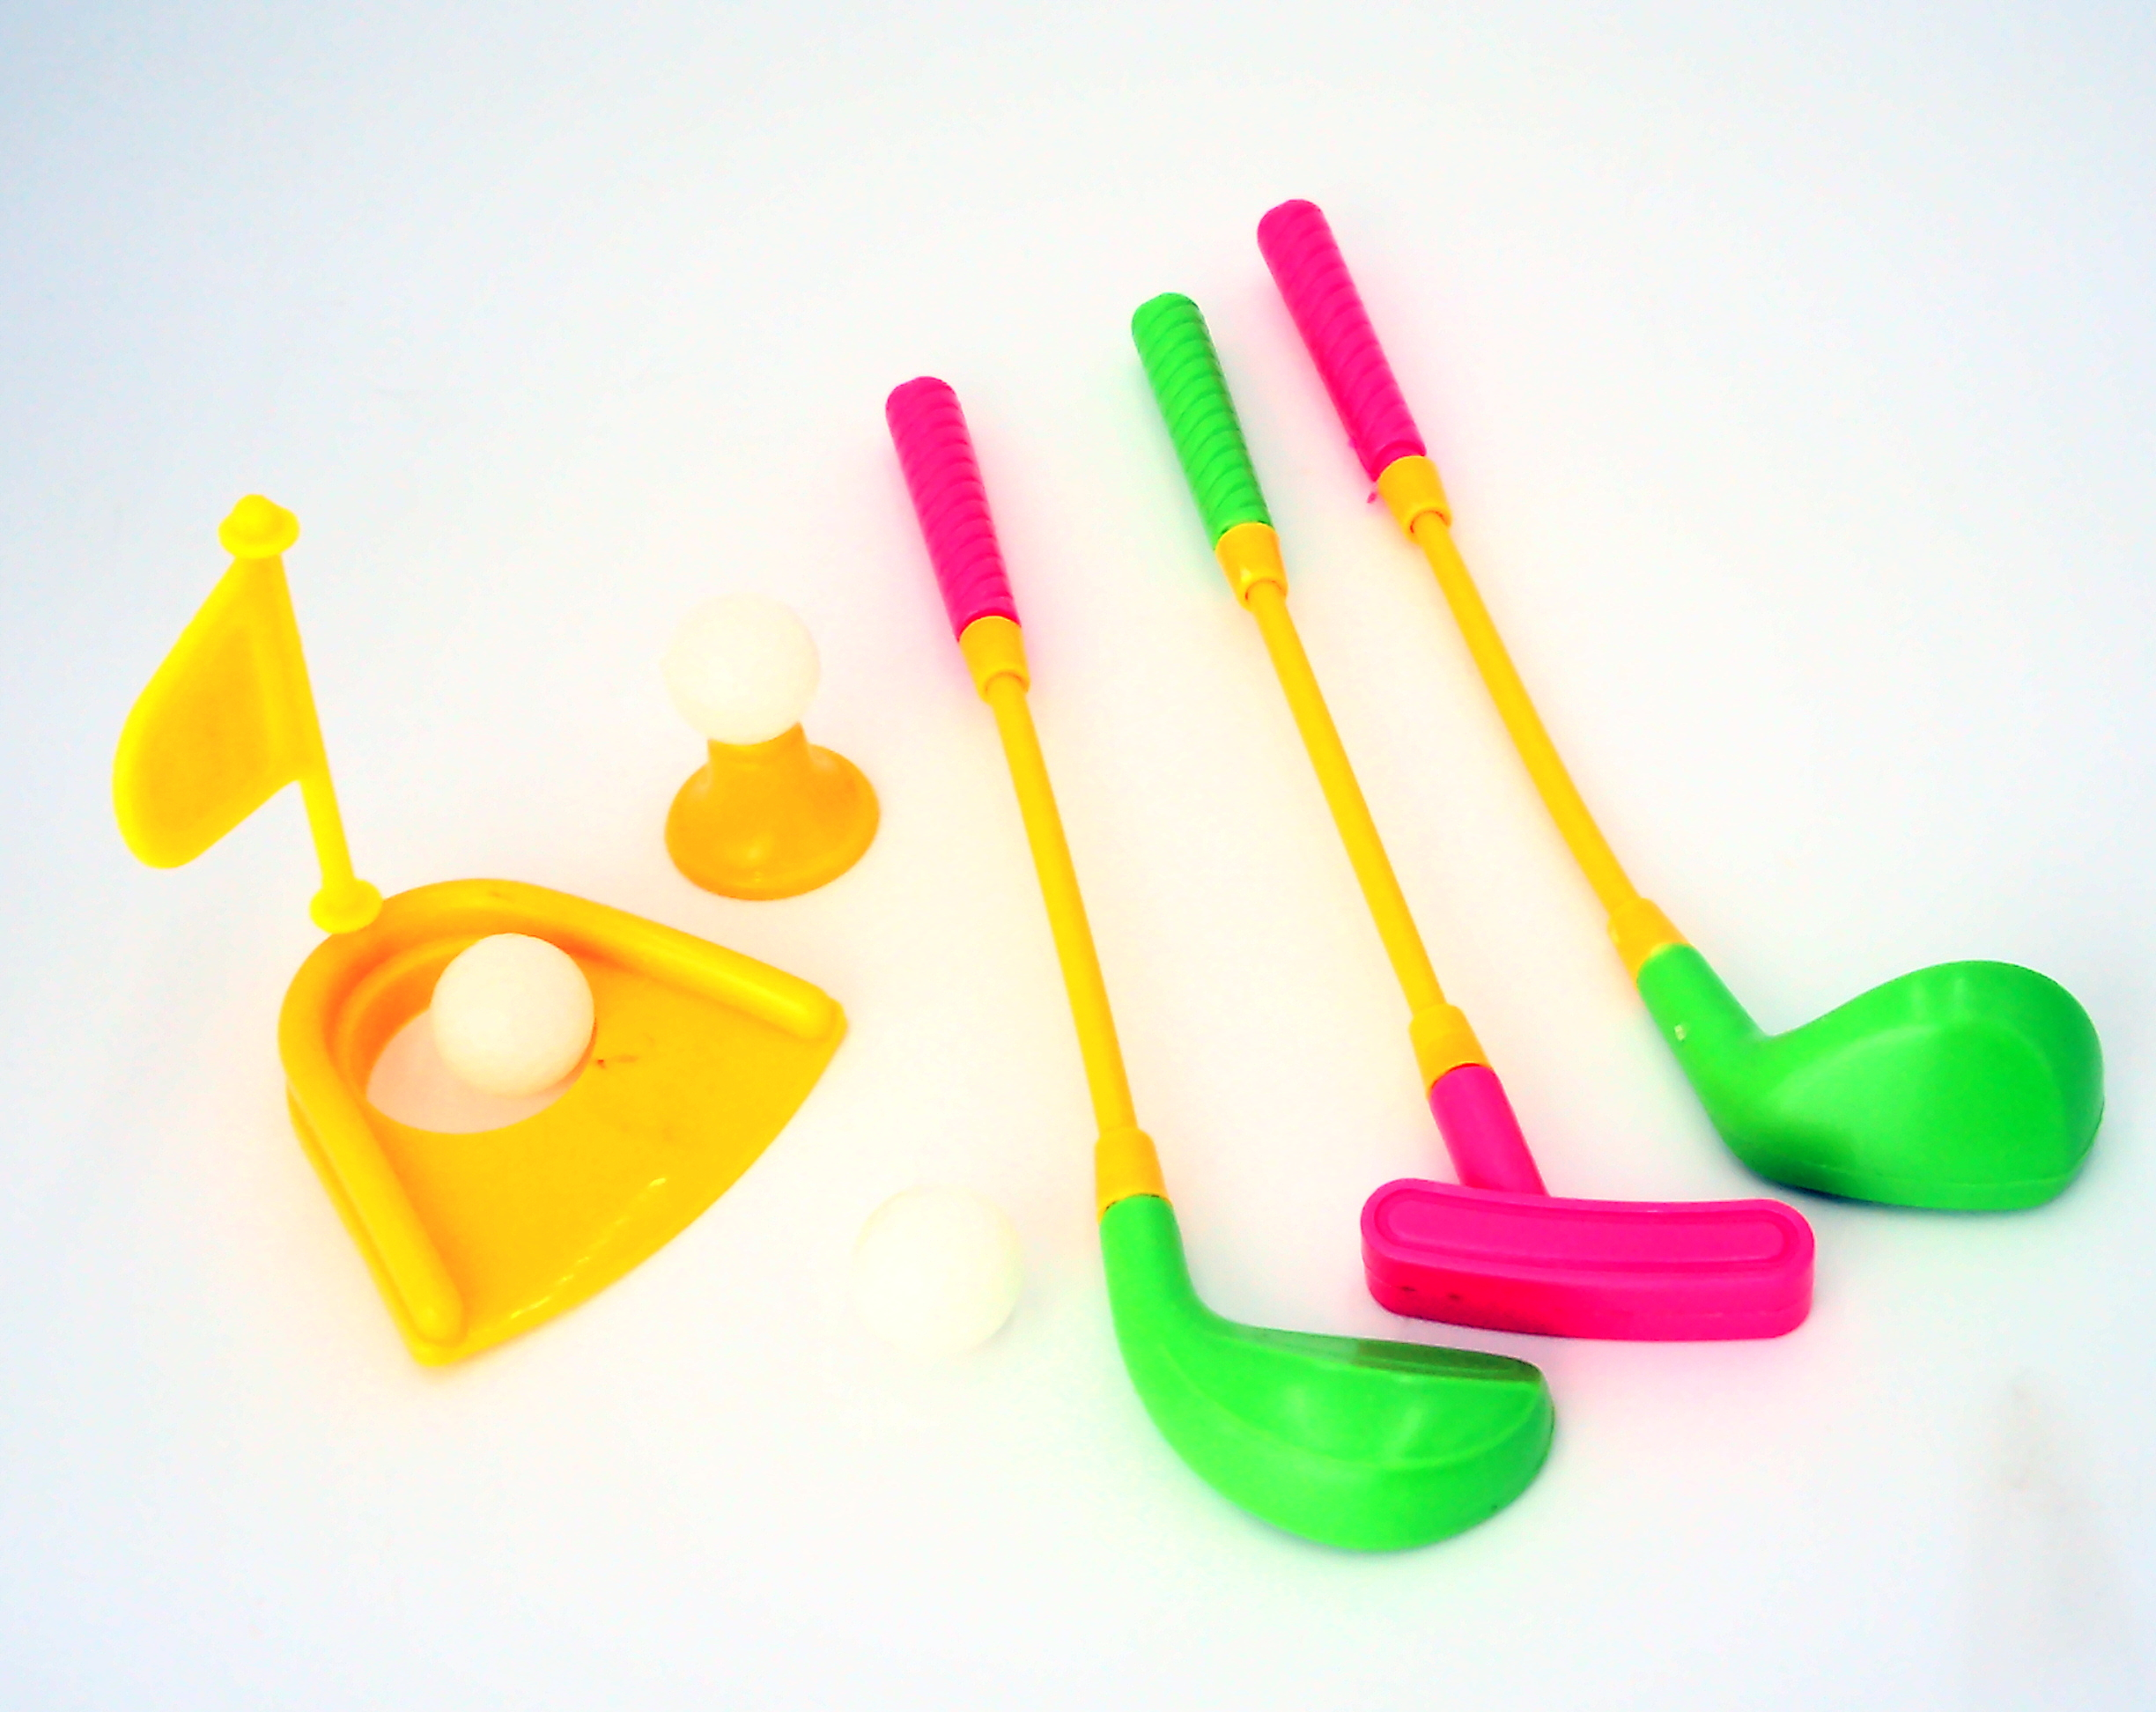 Mini Plastic Golf Clubs, Ball And Hole Cup Toy by HAMMOND TOYS